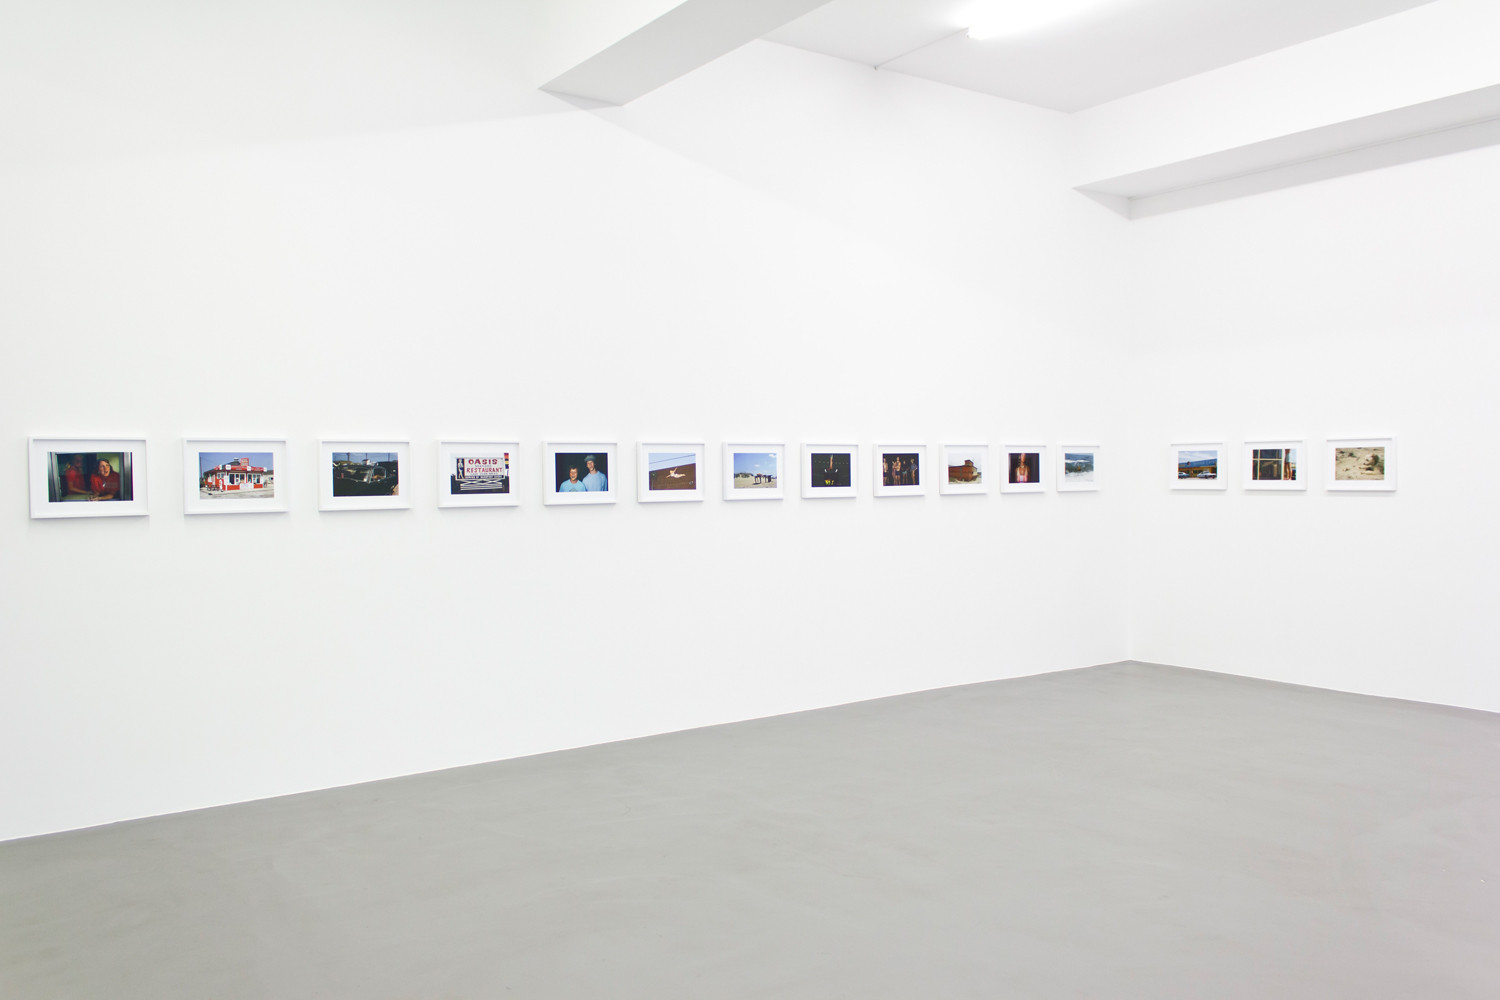 Joel Sternfeld, 'First Pictures', Installation view, Buchmann Galerie, 2014